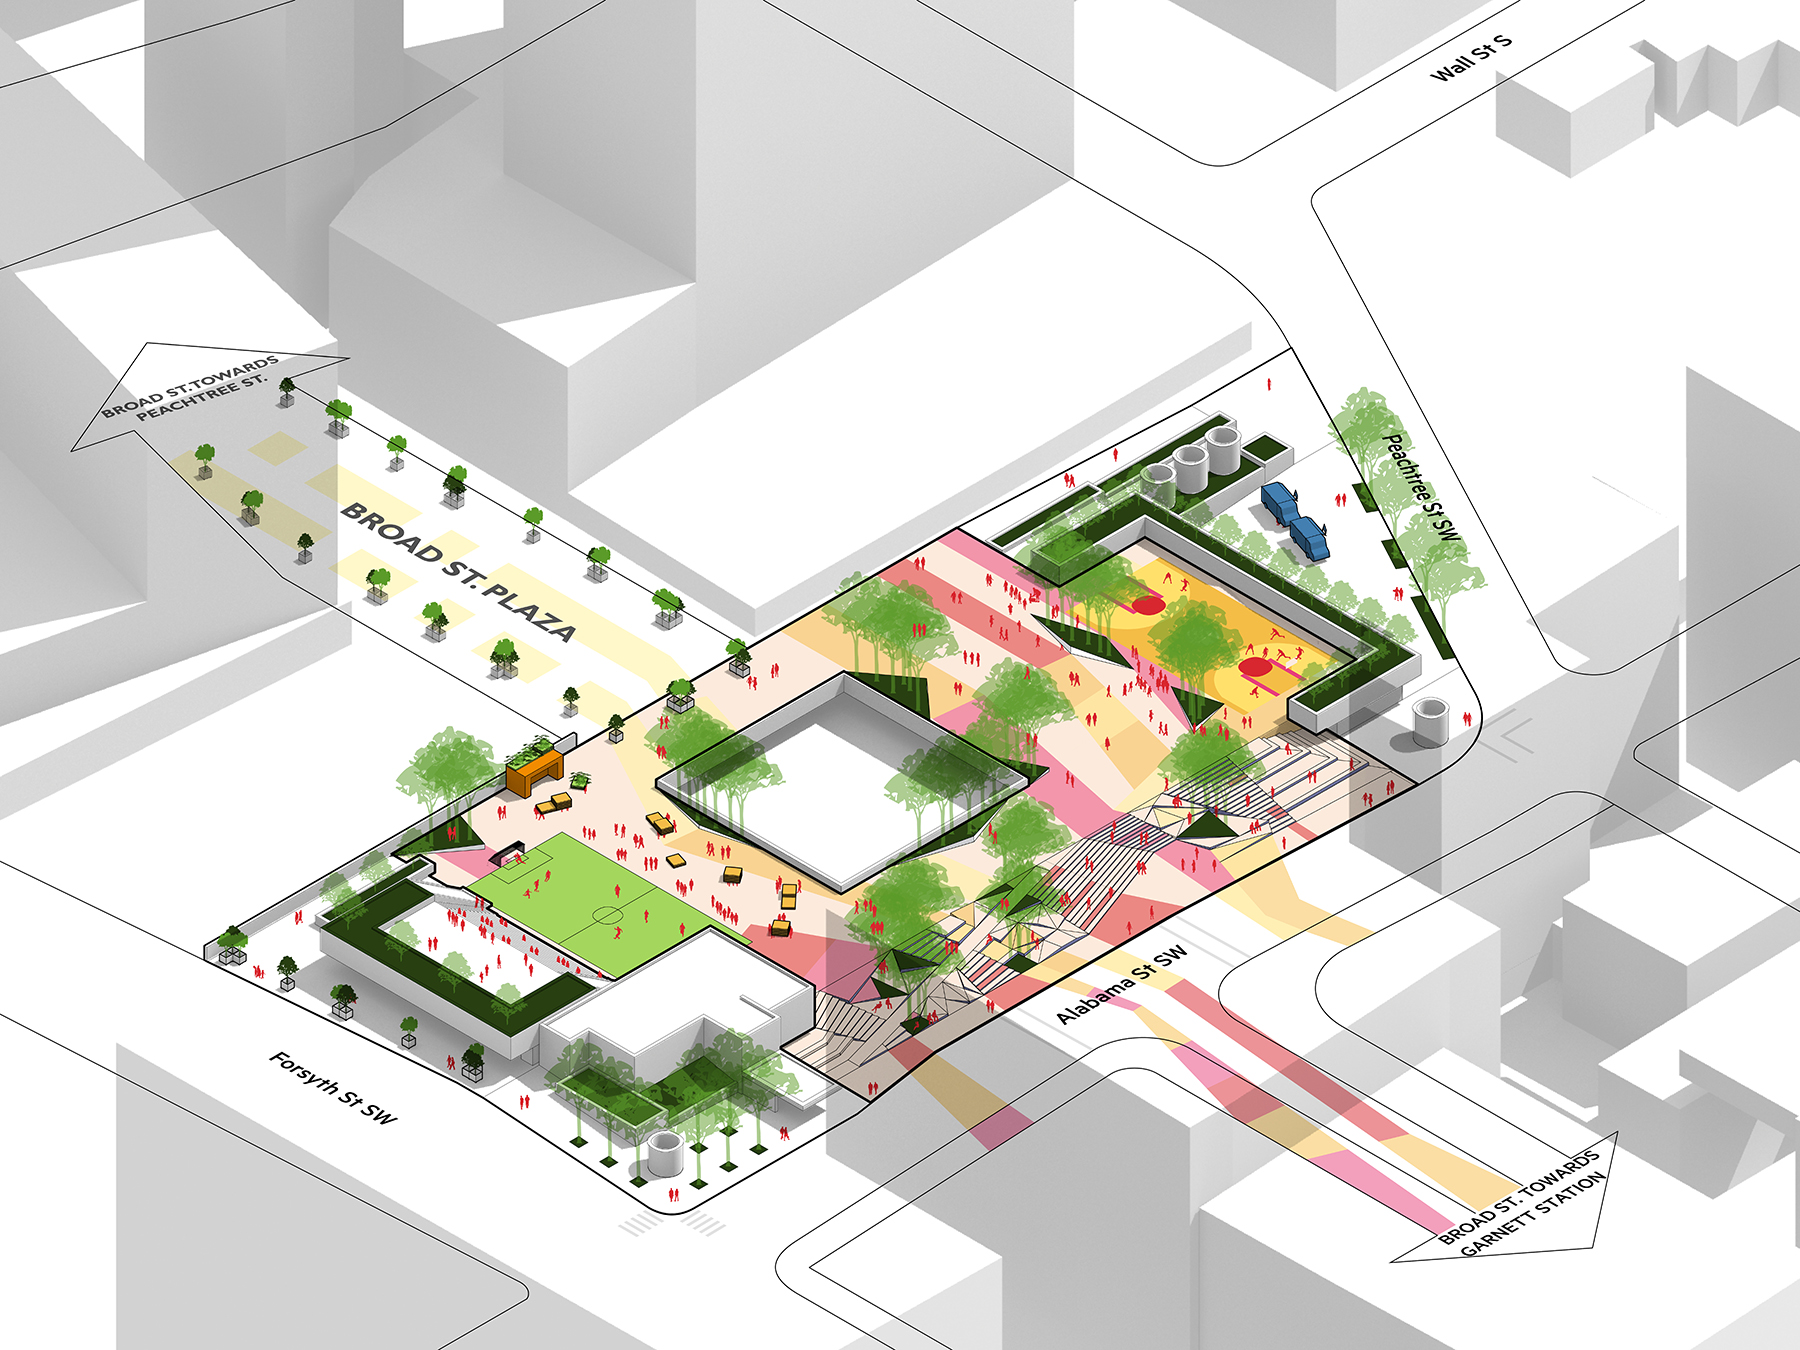 Atlanta_plan_Opportunity Axon-MARTA-Five Points-Proposal_20170908-01.jpg